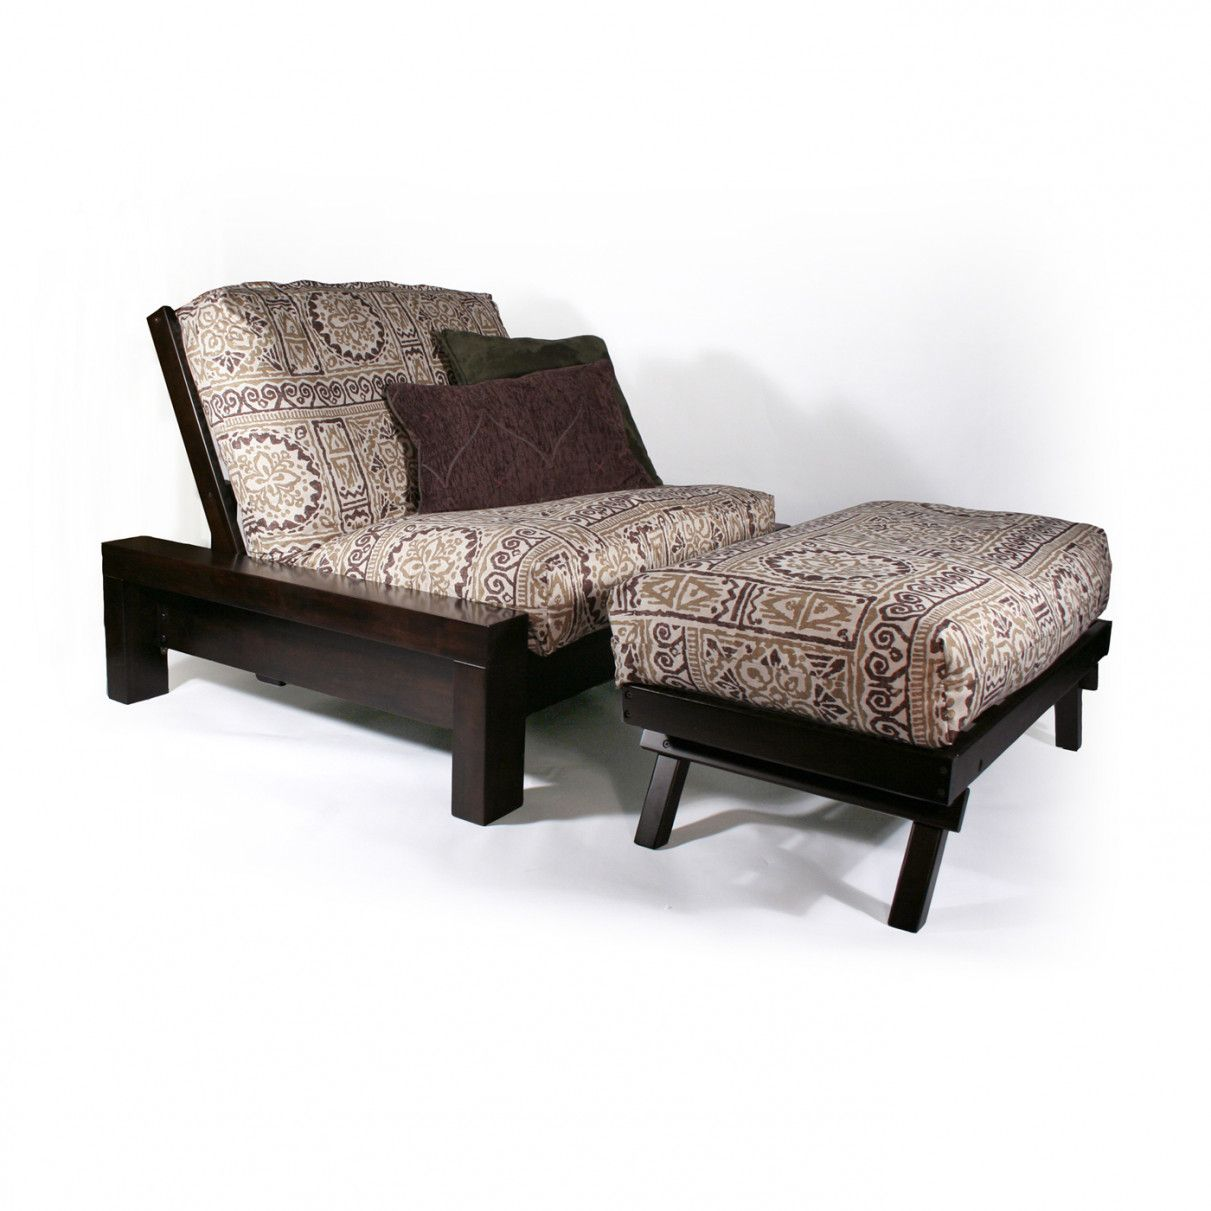 Twin Size Futon Chair Modern Home Office Furniture Check More At Http